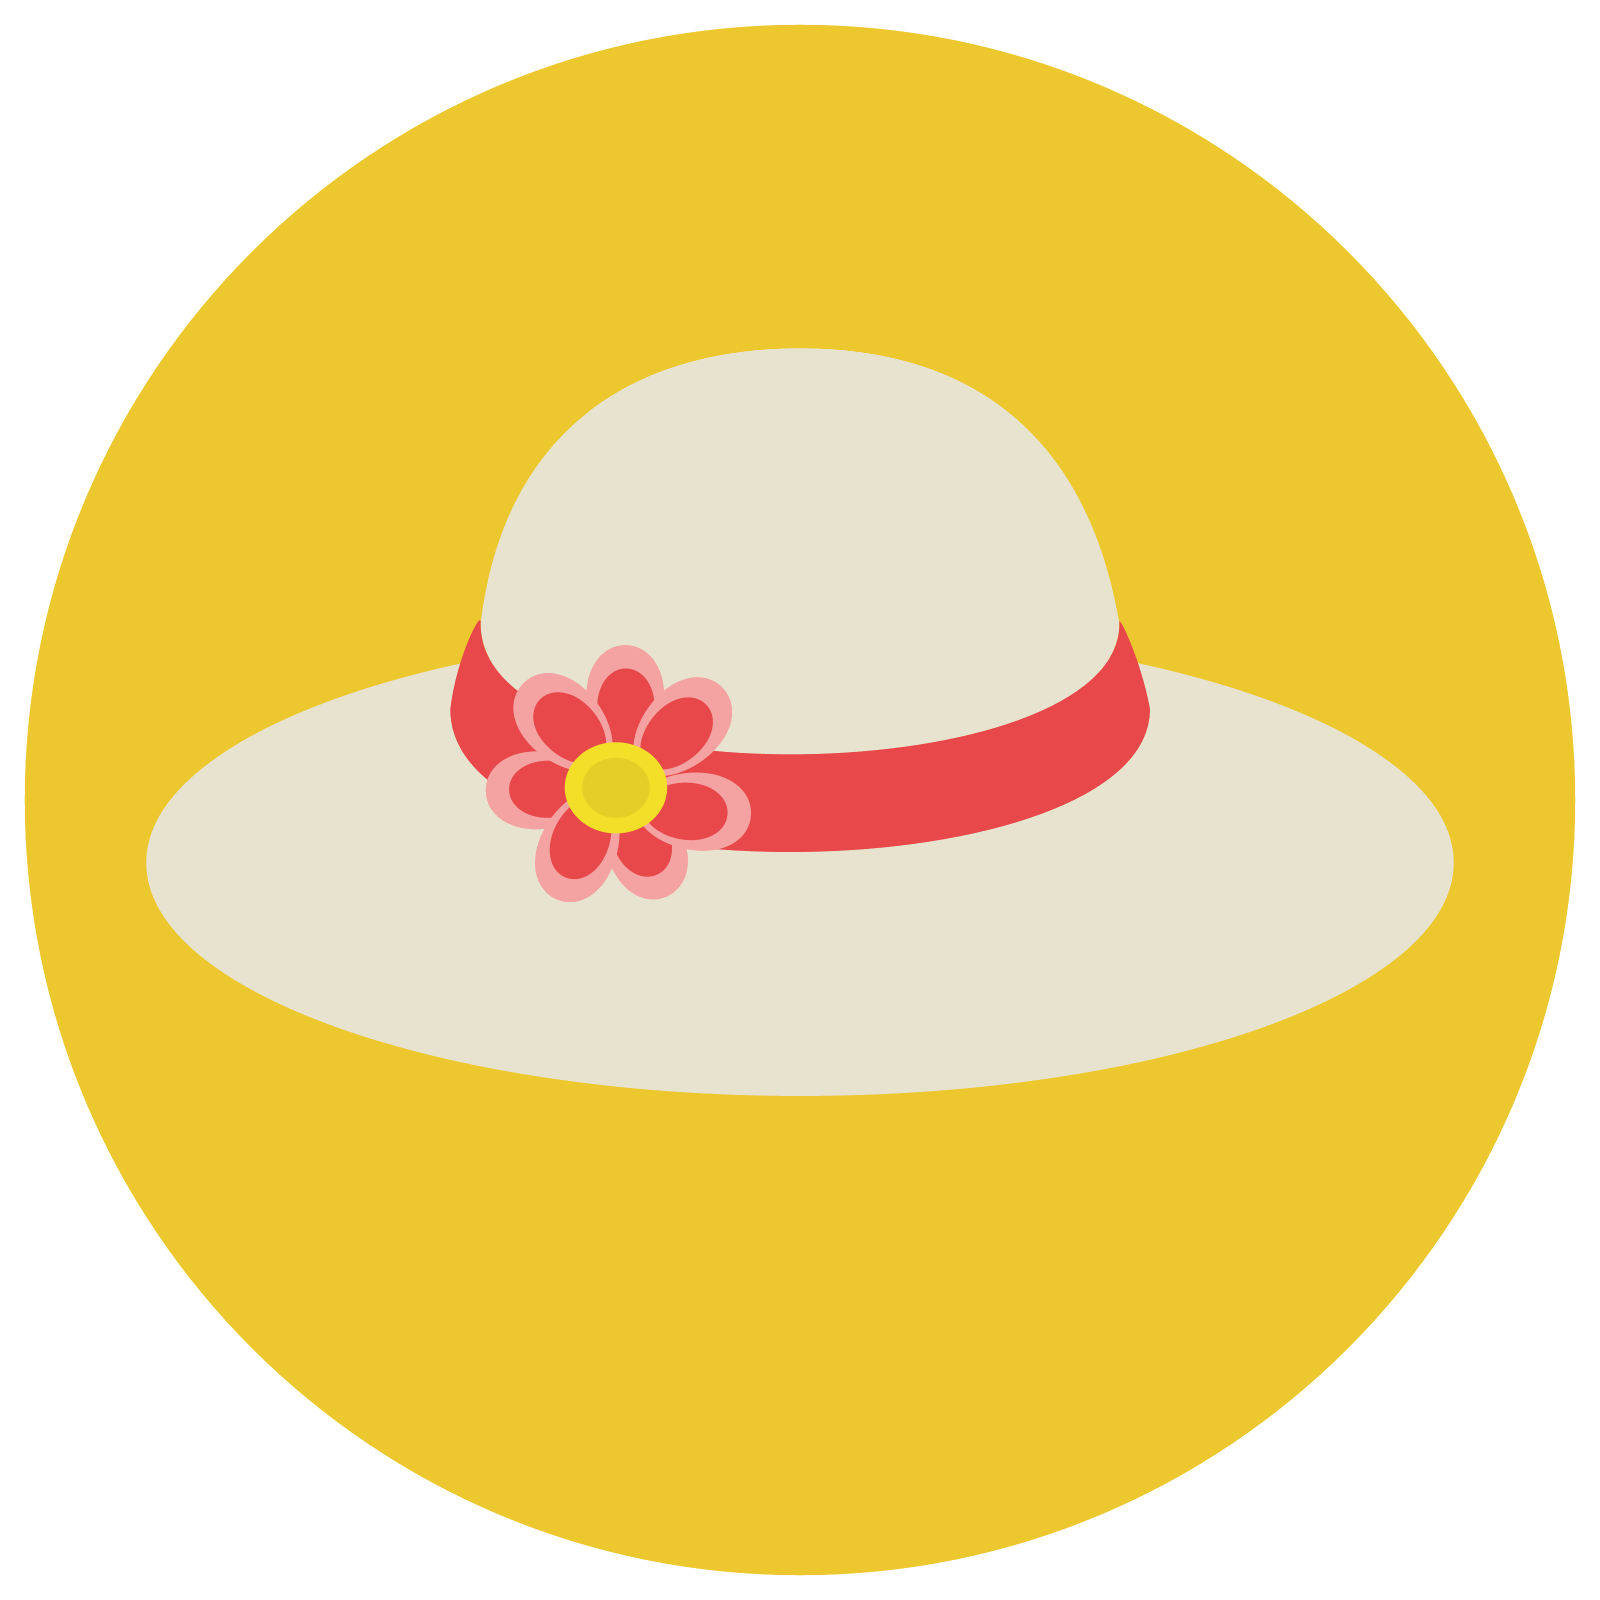 Summer png flat. Icona hat download gratuito